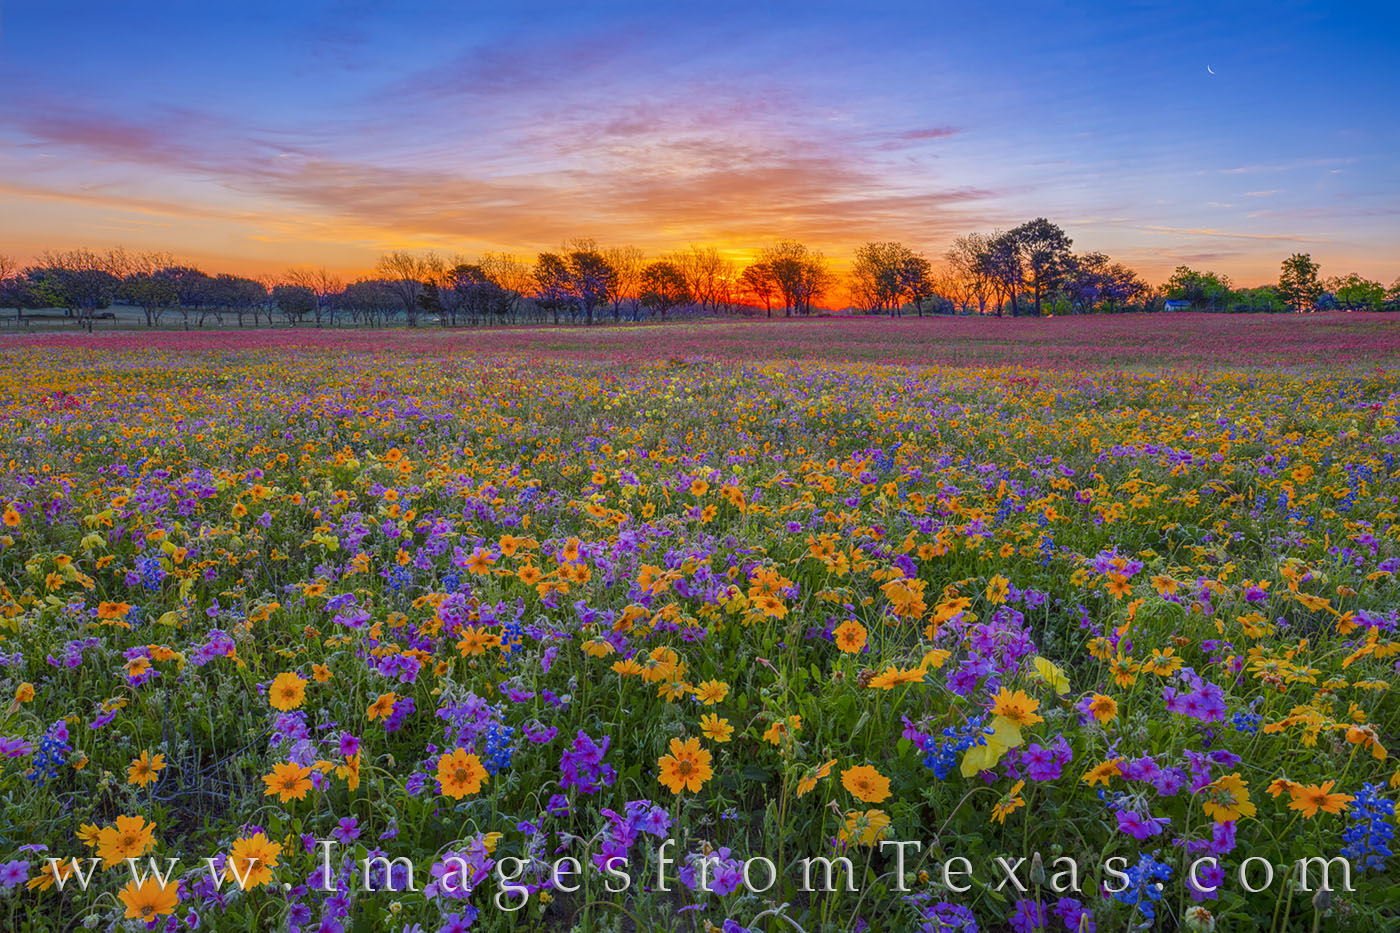 Frost covered the ground on this cold April morning east of San Antonio. Purple wildflowers (phlox) seemed to turn to soft pastels...